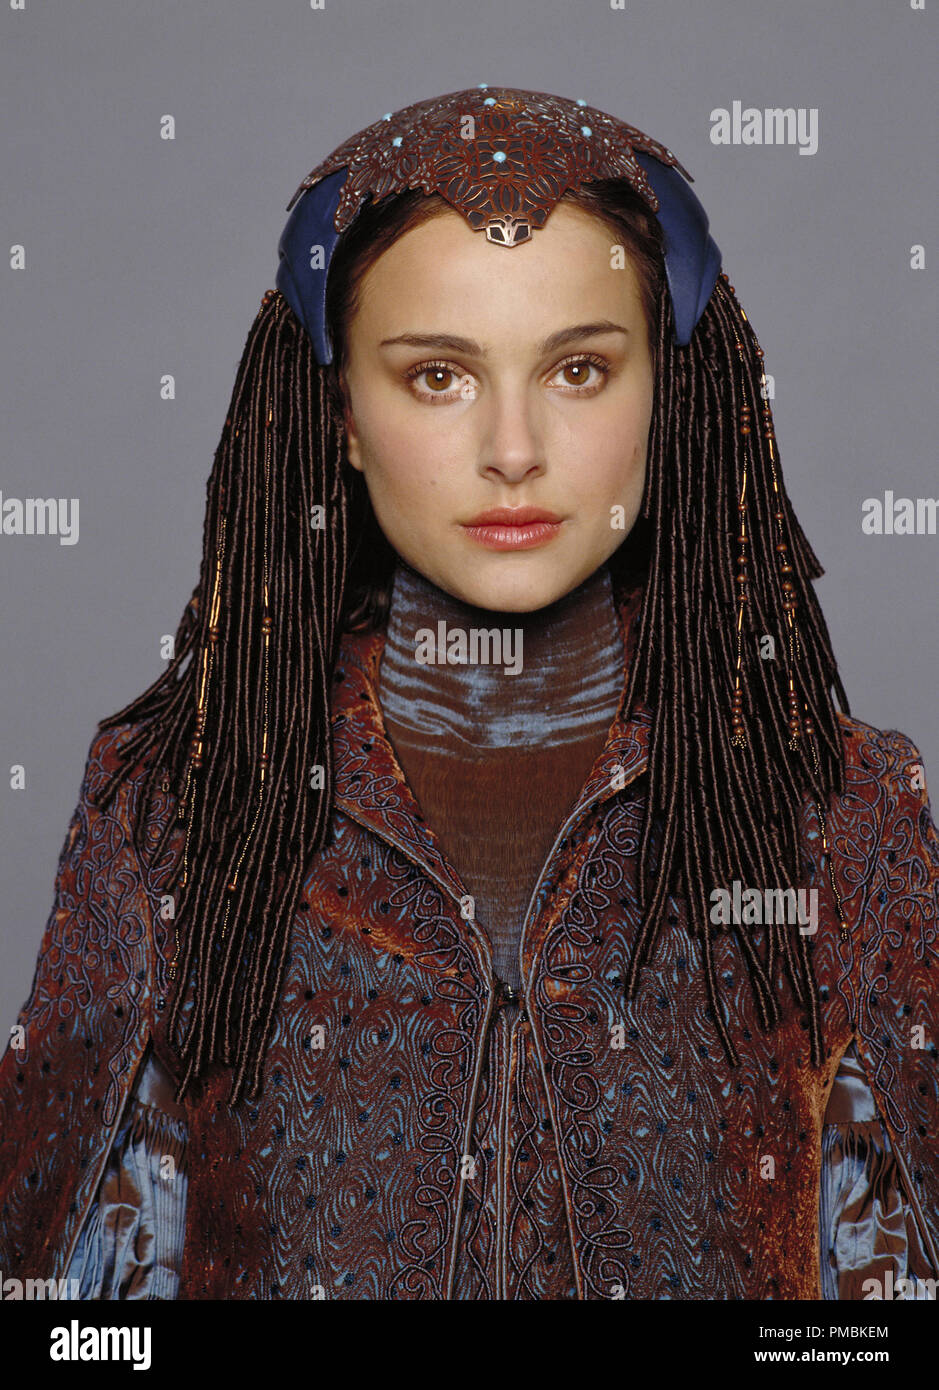 Padme Star Wars High Resolution Stock Photography And Images Alamy